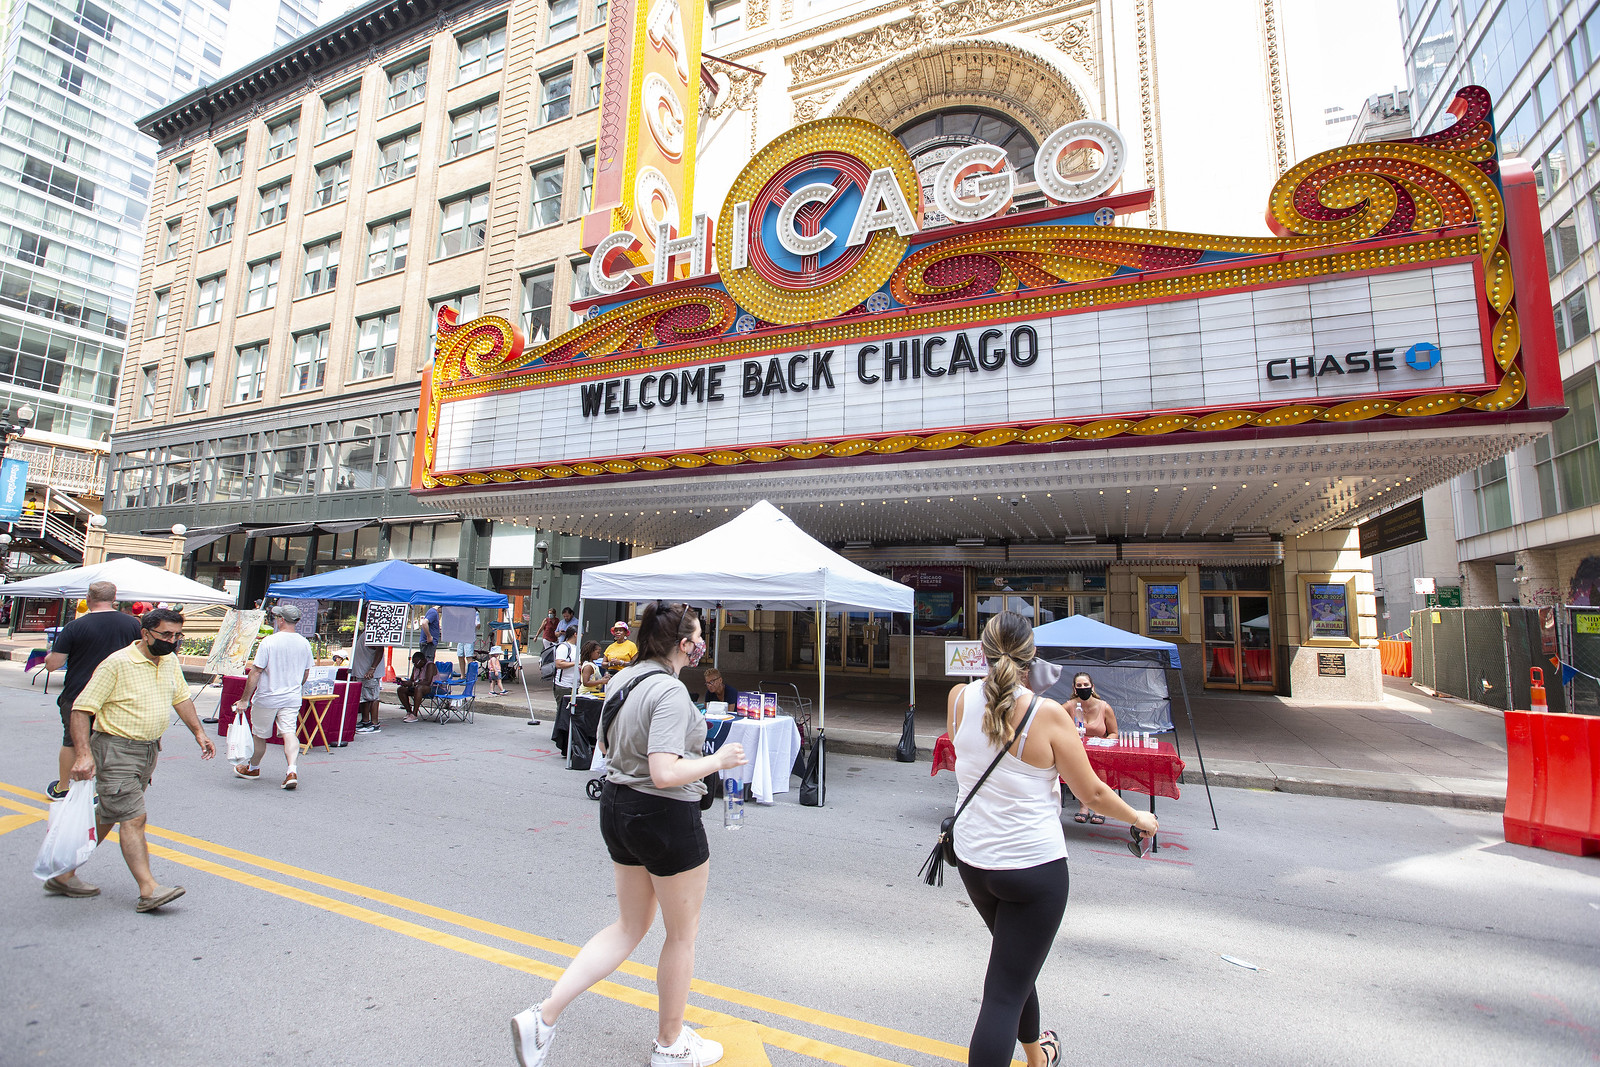 the marquee of the Chicago Theatre, reads Welcome Back Chicago